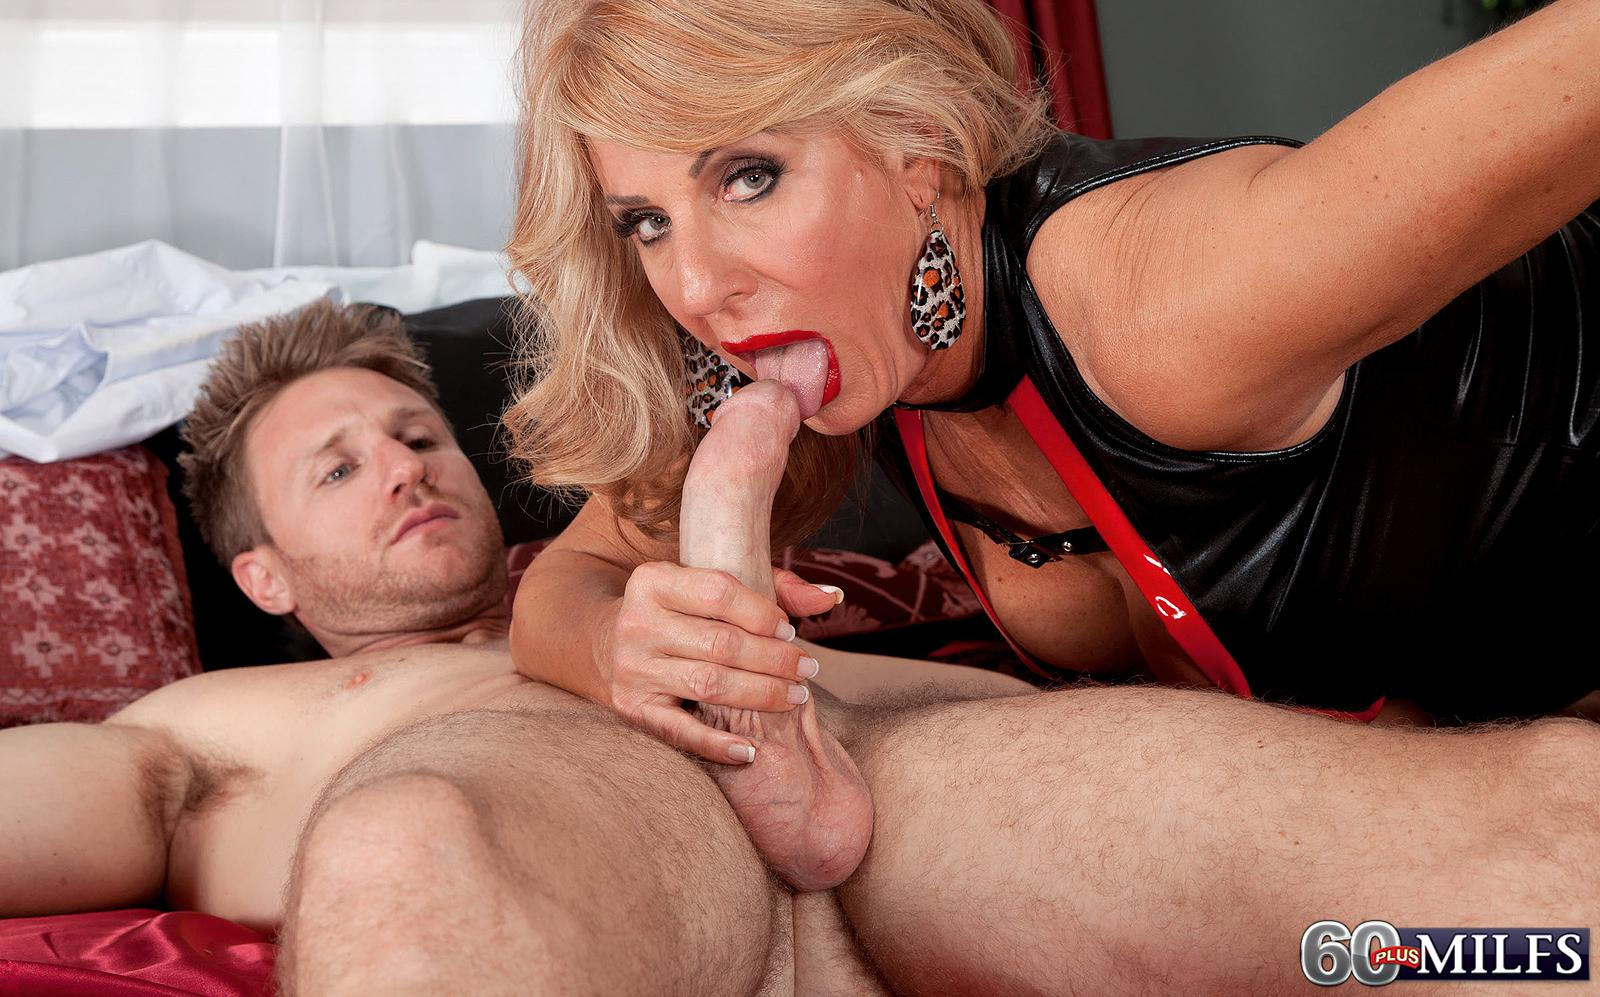 Logan a lustfull granny offers her horny old pussy to a young lucky guy